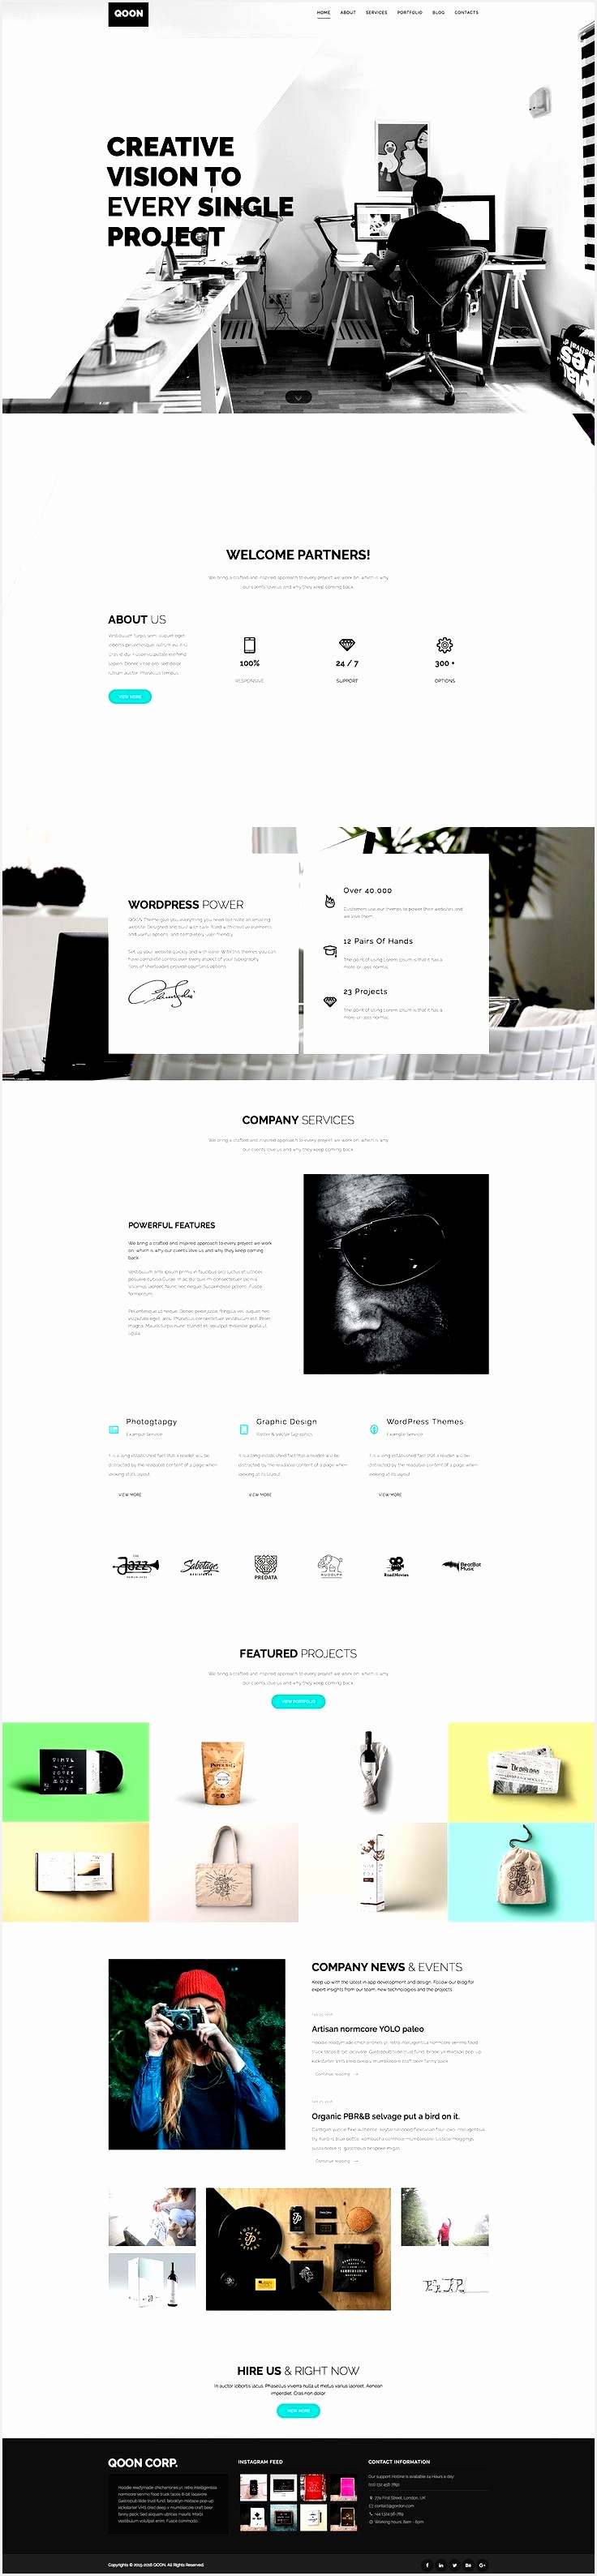 New Free Templates Best Ivoice Template 0d Archives Free Resume Best Free Resume Templates Lovely3177736